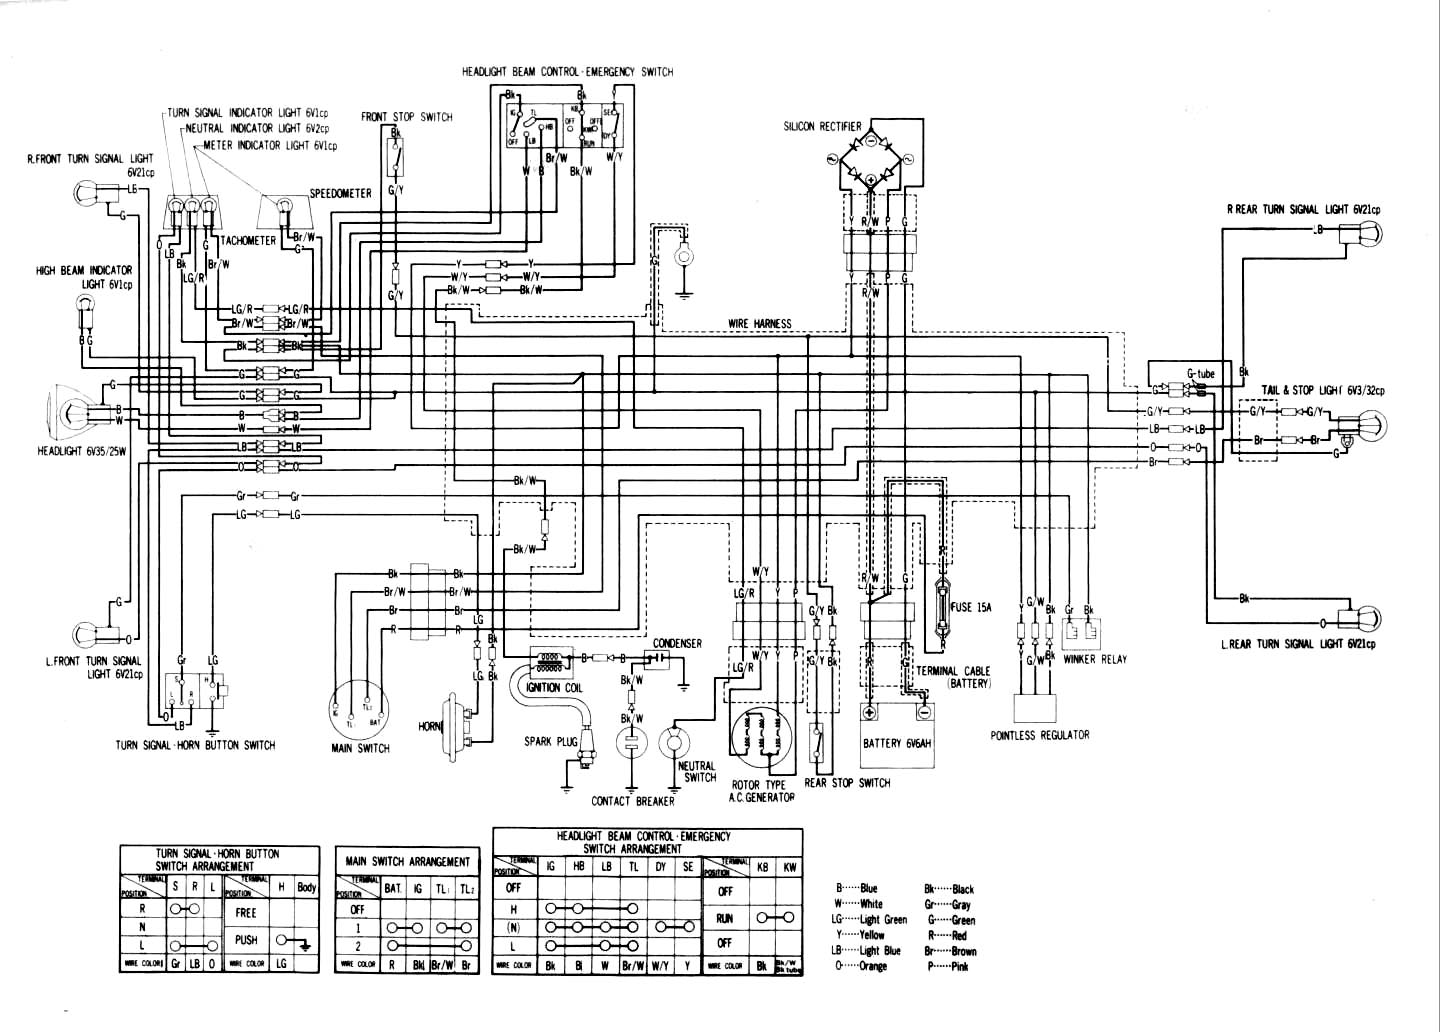 Kawasaki 125 Wiring Diagram Library Suzuki 400 4x4 Xl175 Unknown